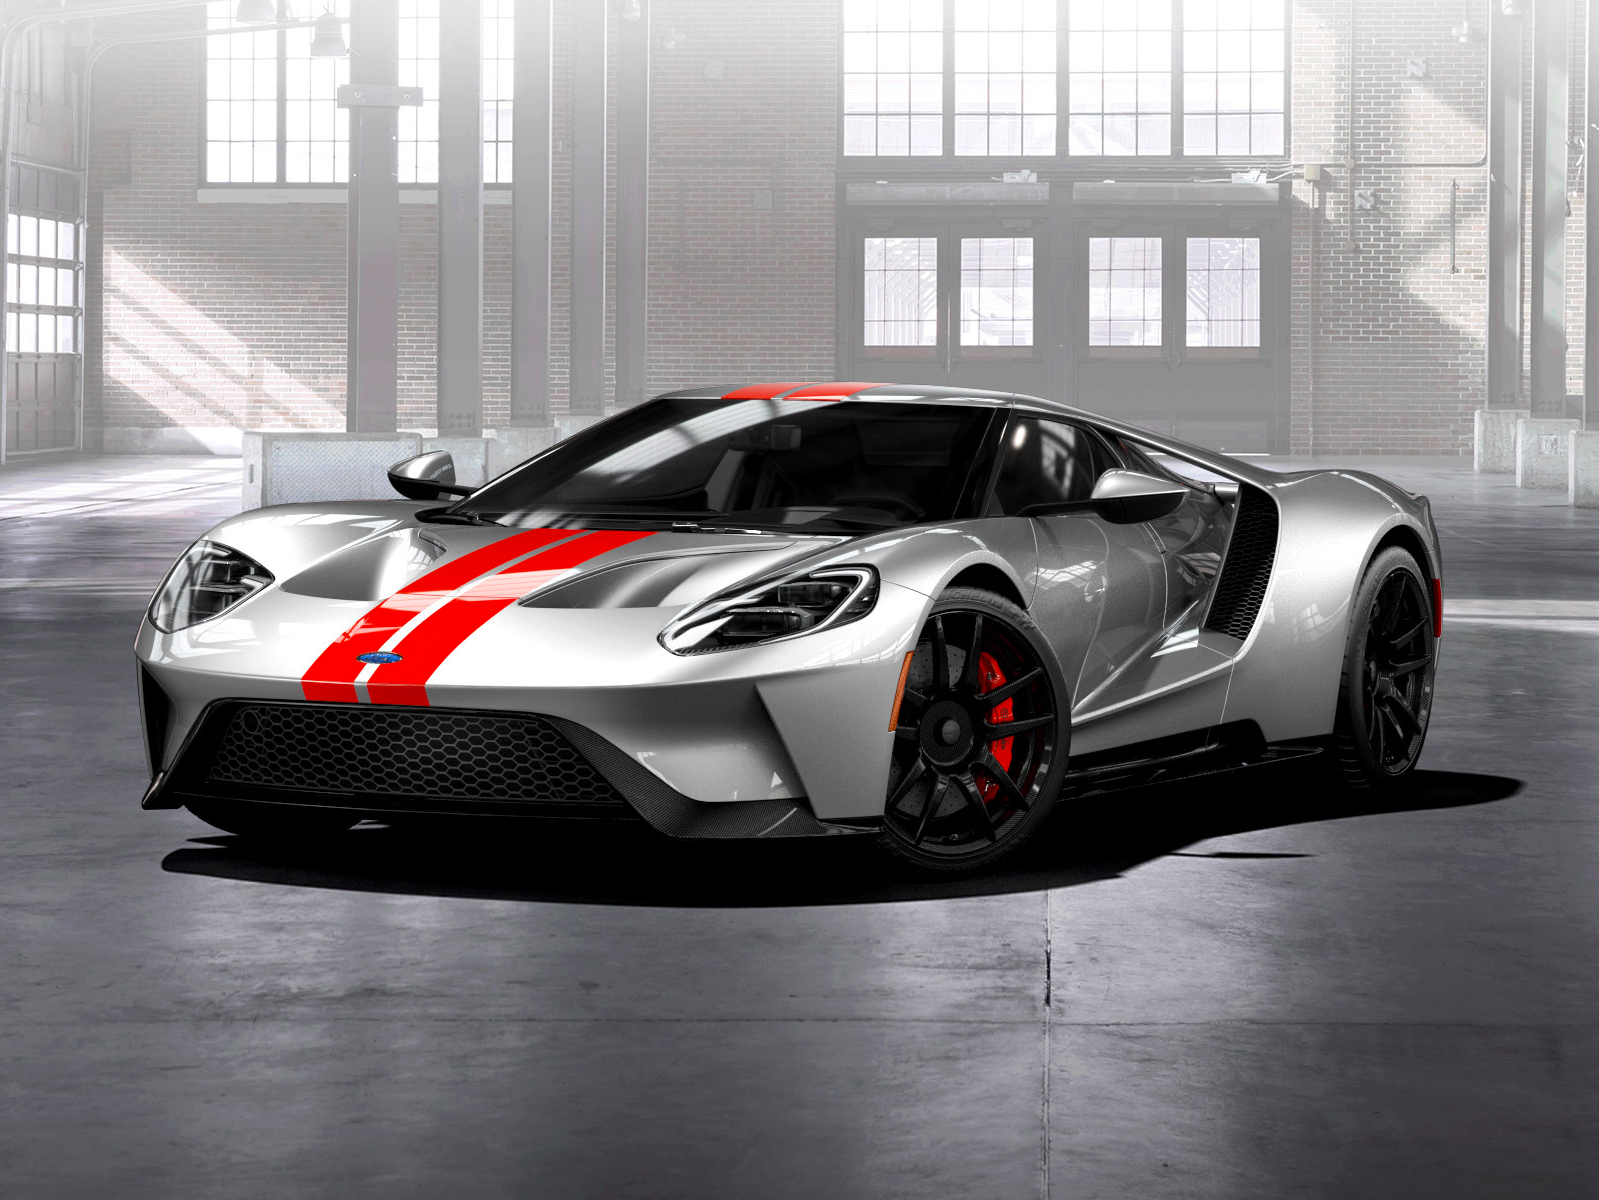 Ford's GT is the counterpart to high-performance sports cars from competitors like Ferrari, Lamborghini, Porsche, and McLaren.